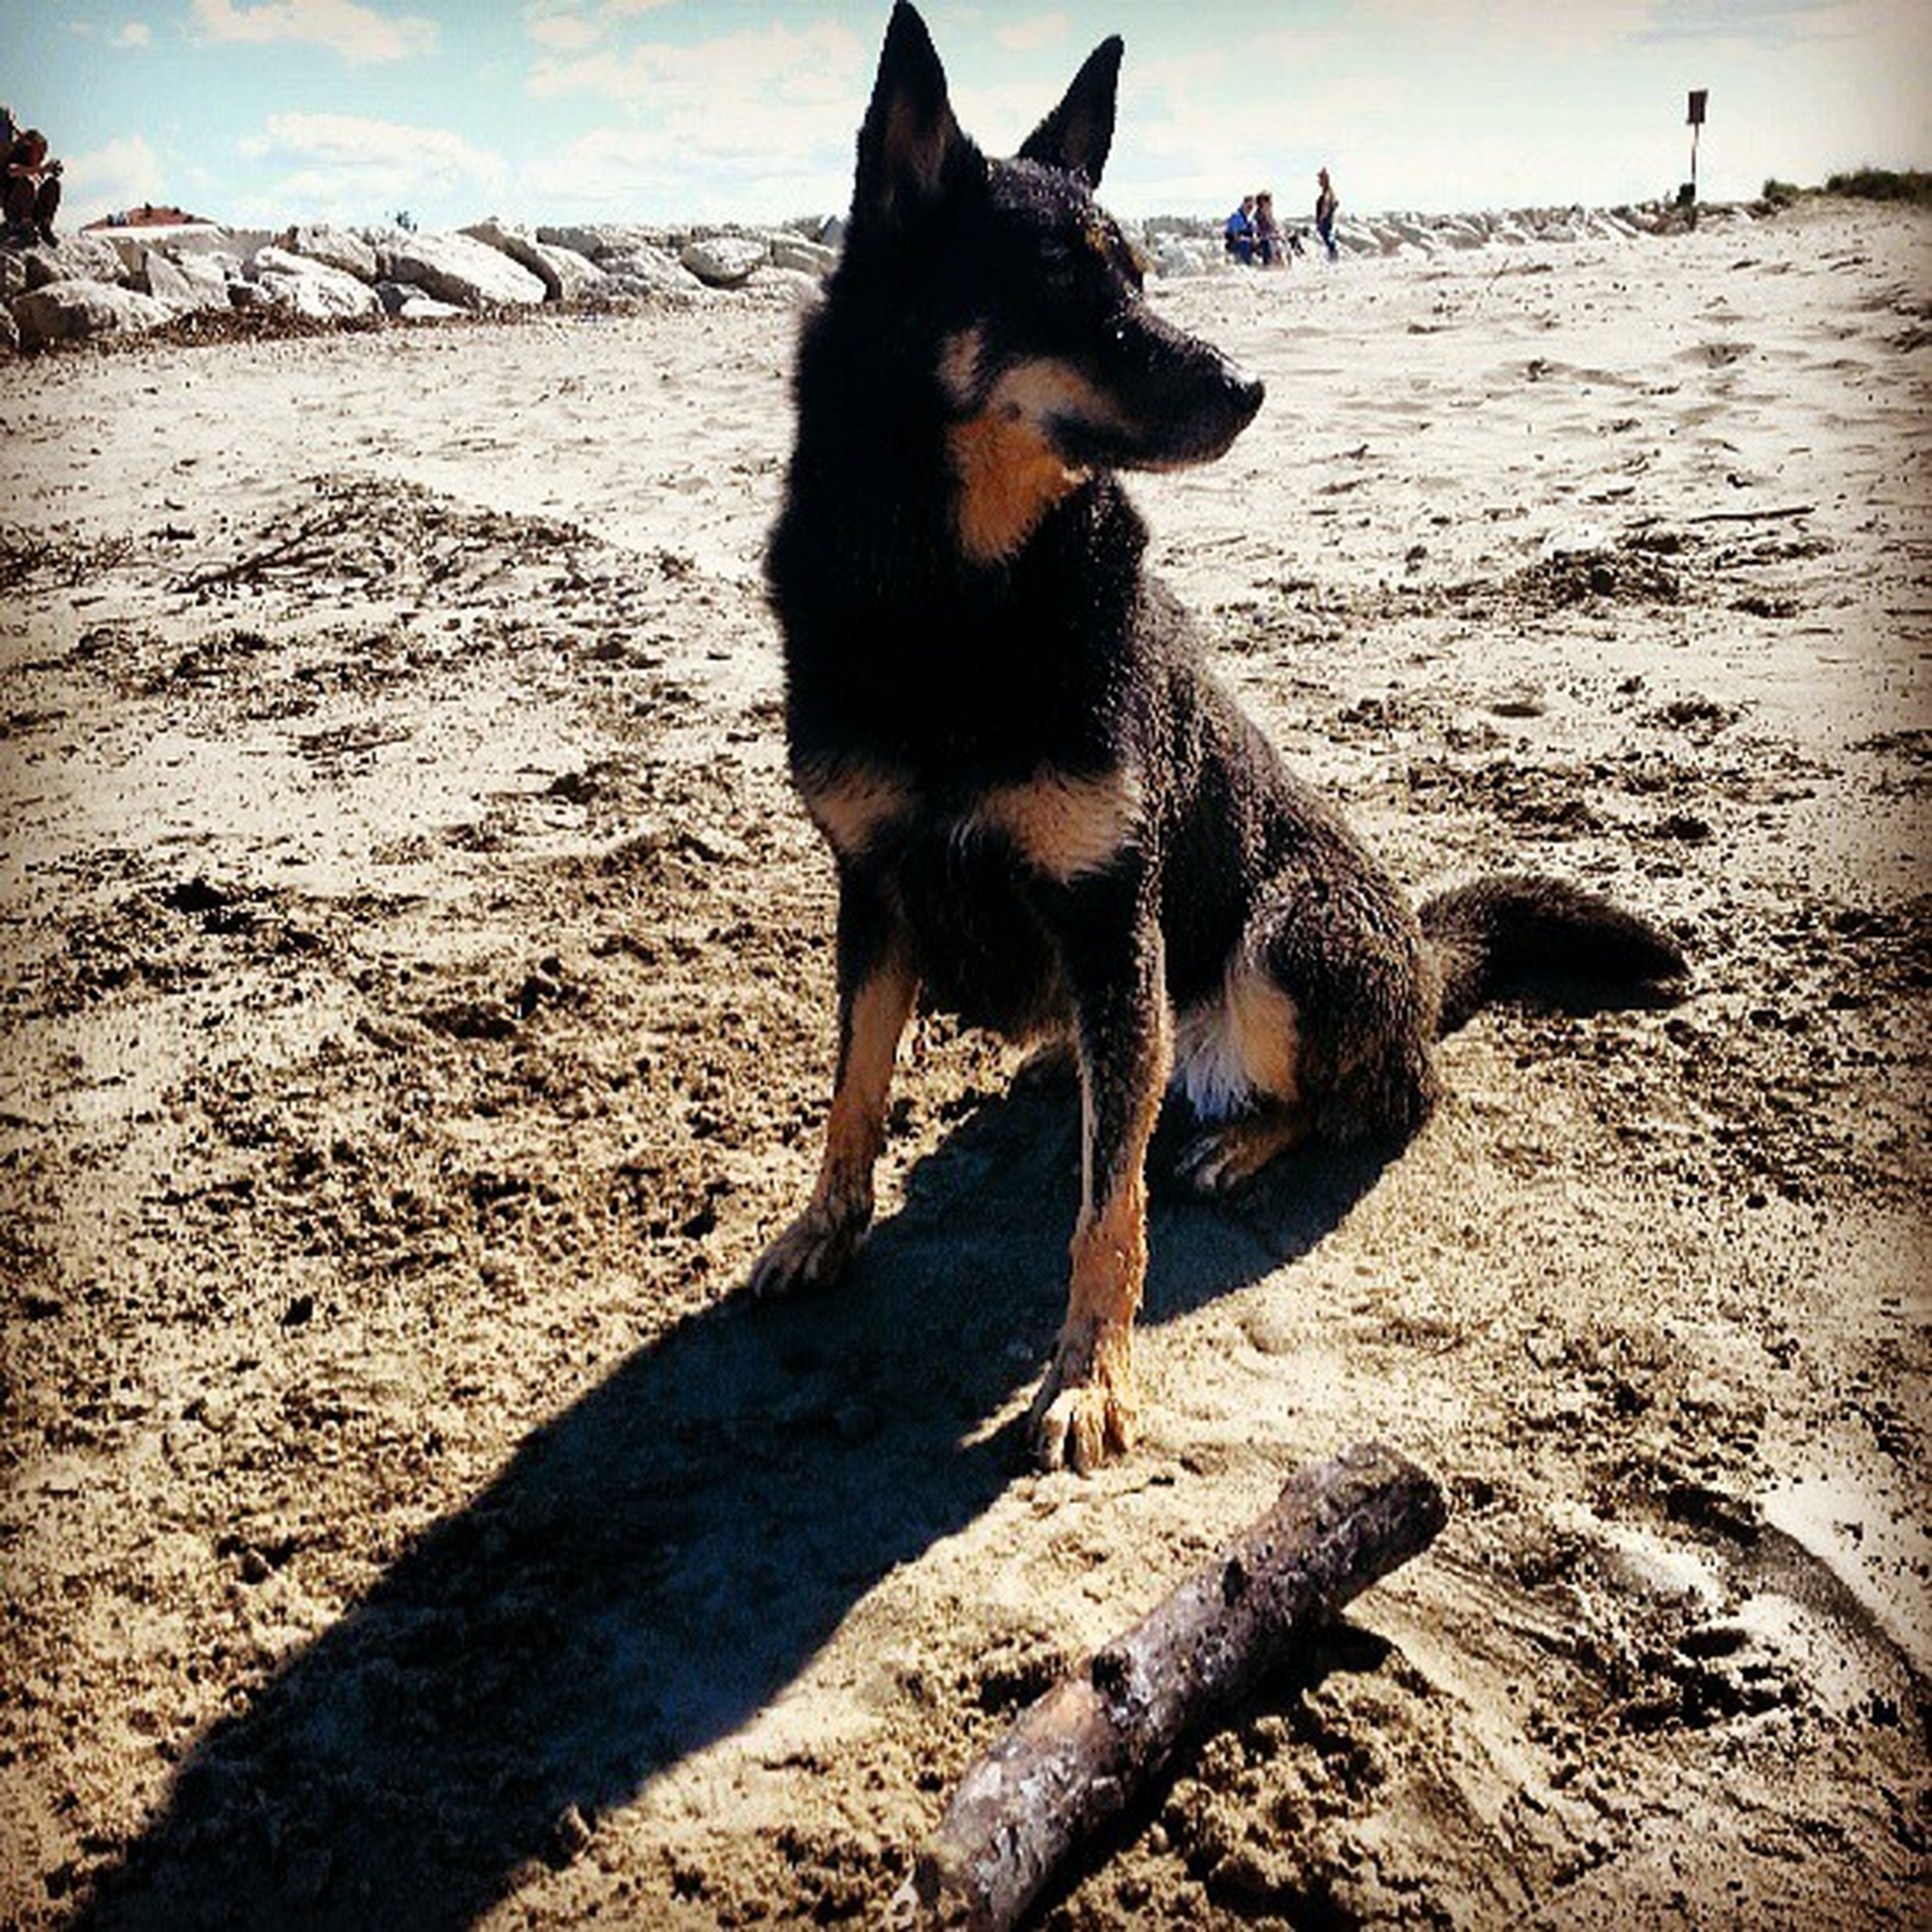 animal themes, one animal, mammal, domestic animals, beach, sand, sunlight, full length, shadow, pets, standing, nature, walking, sky, shore, day, sitting, outdoors, dog, side view